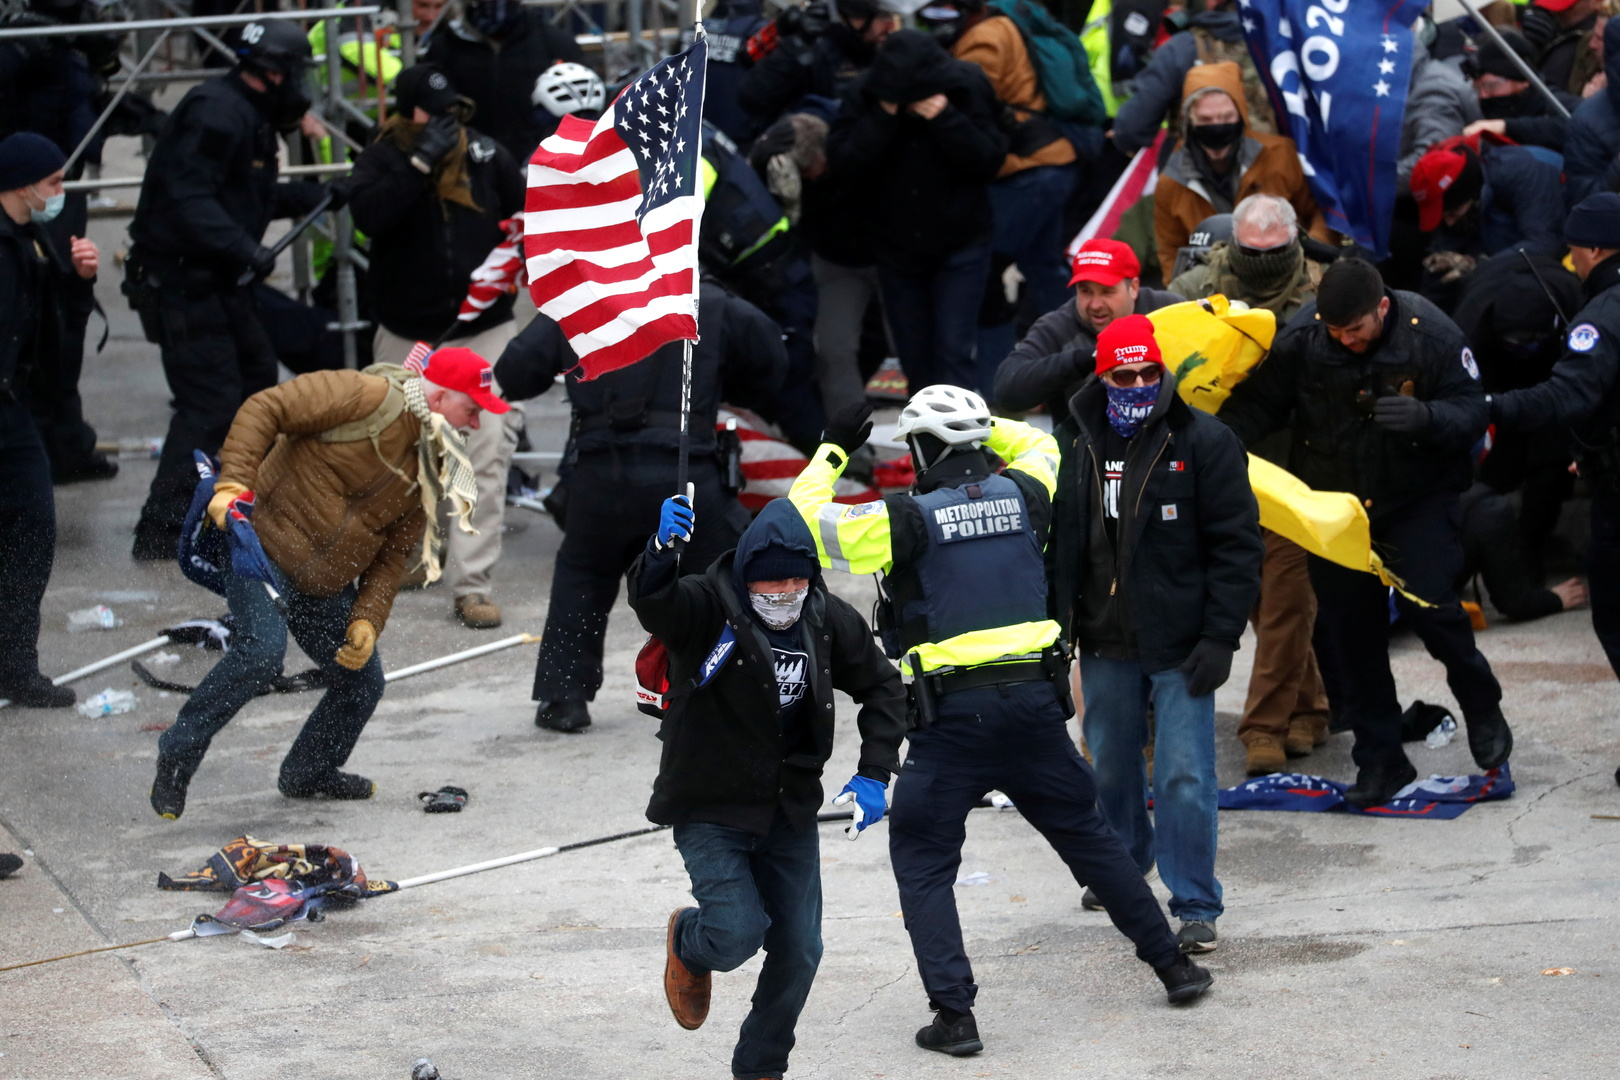 4 people were killed and 52 others arrested as a result of protests in Washington, DC